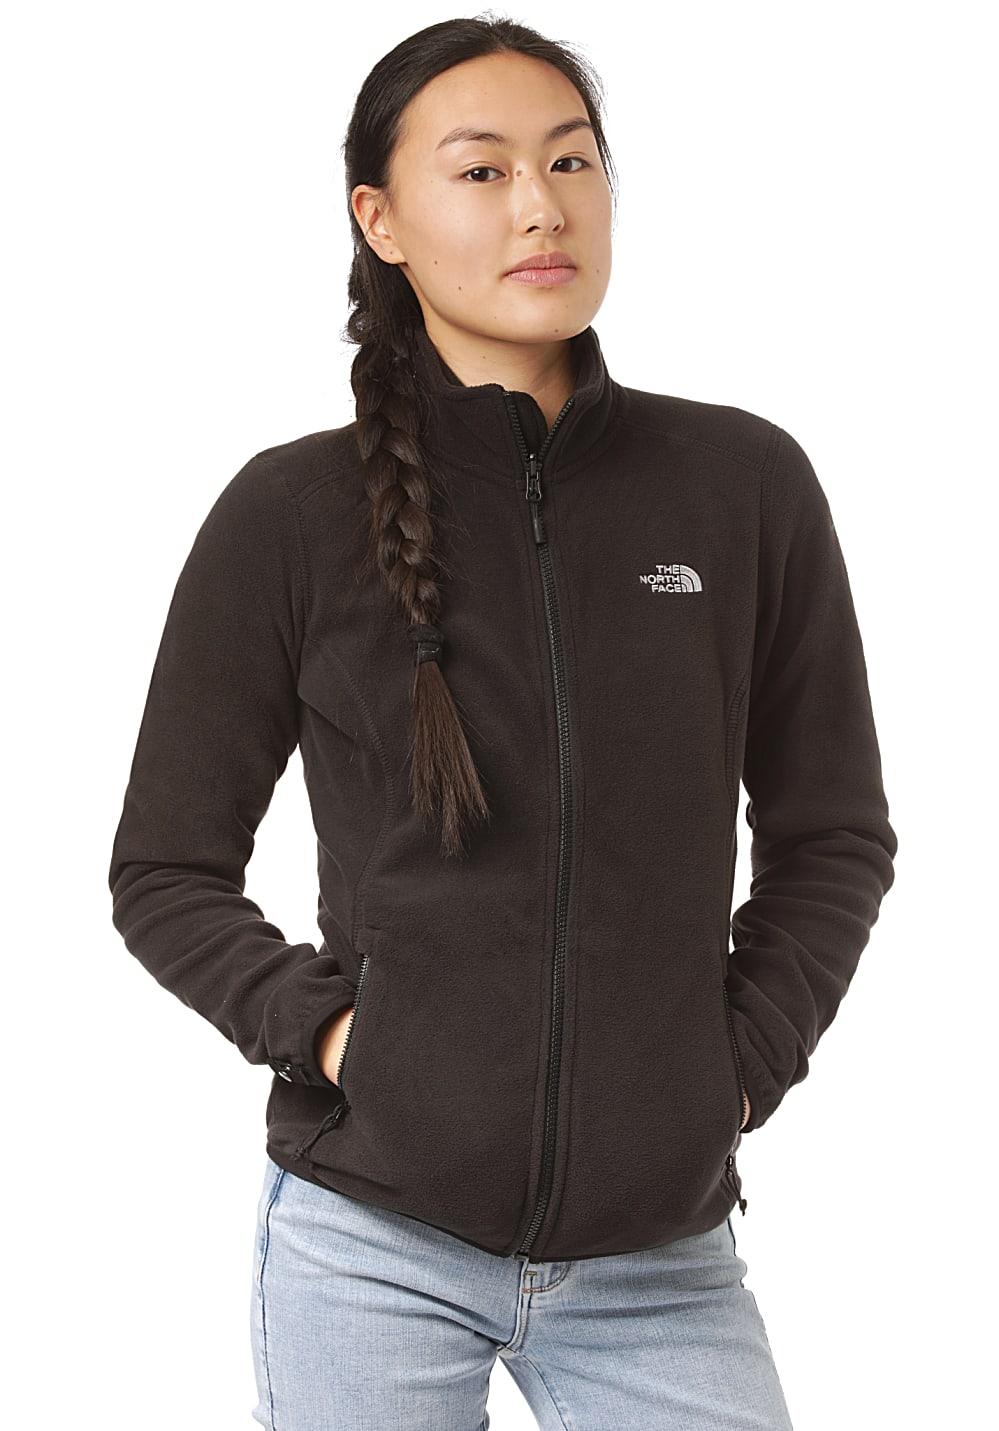 THE NORTH FACE 100 Glacier - Fleecejacke für Damen Schwarz